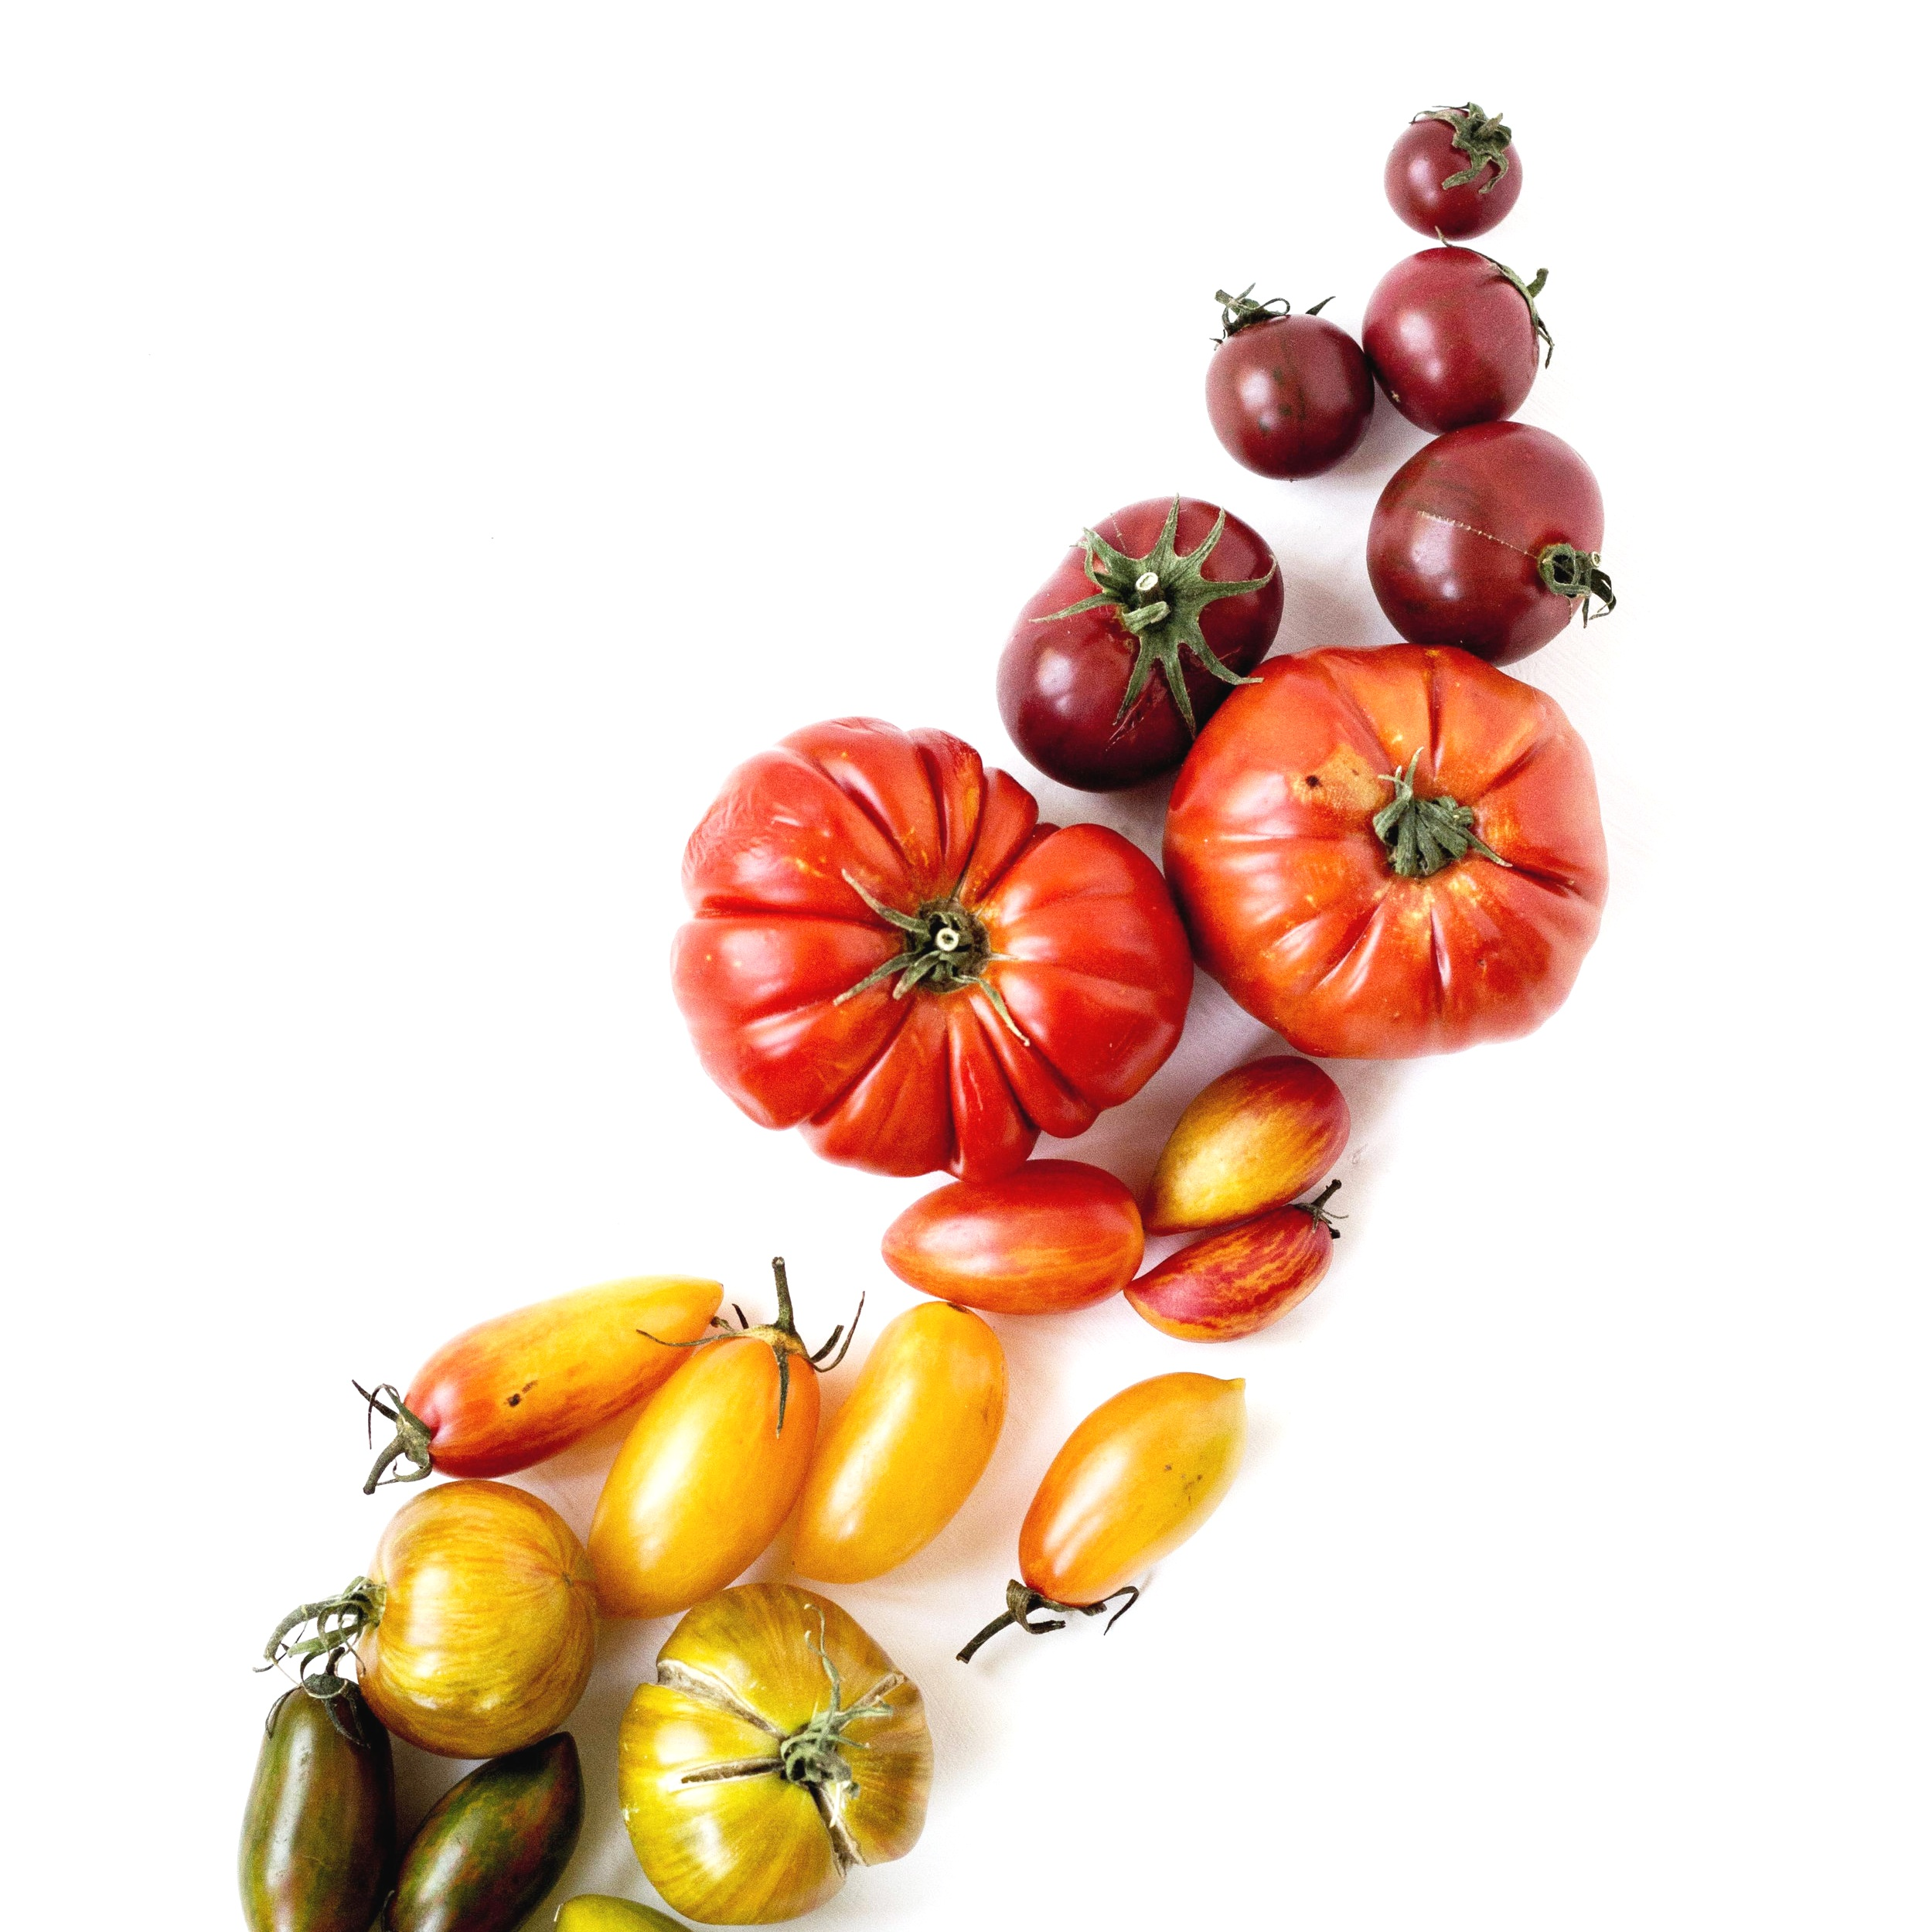 Nutritional Counseling -